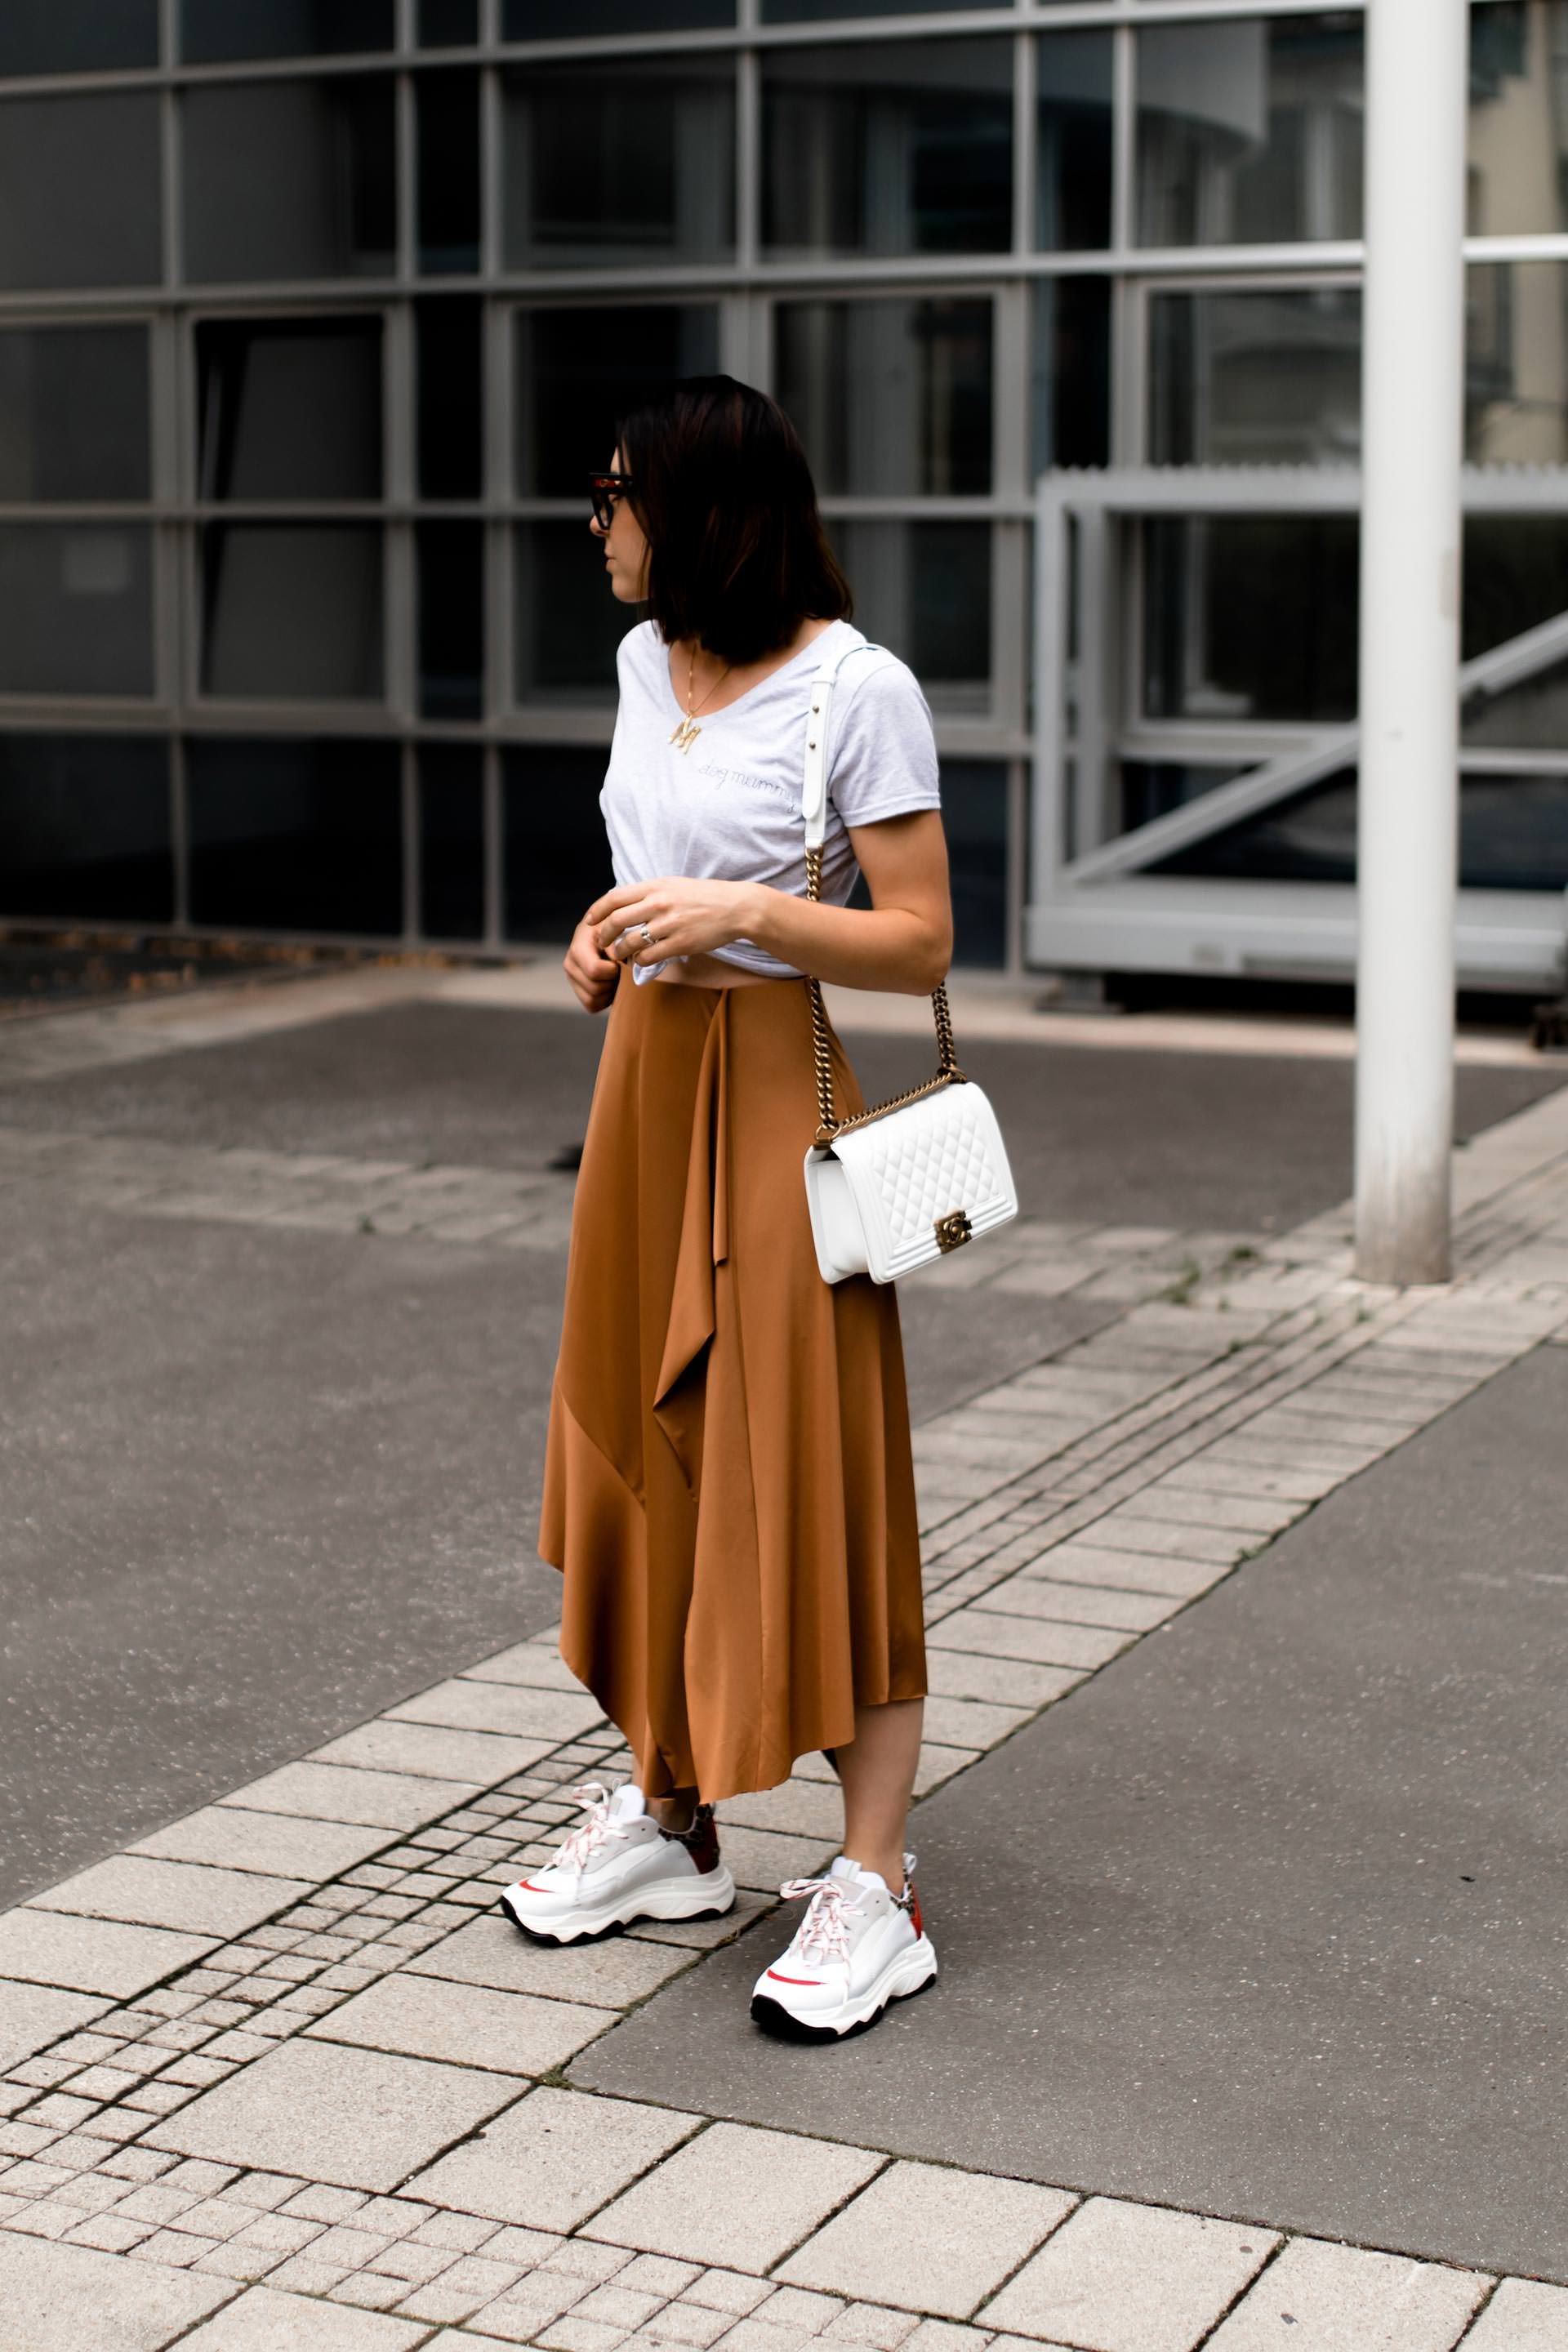 Der Chunky Sneakers Trend: Mein Sommer Outfit mit Midirock ...